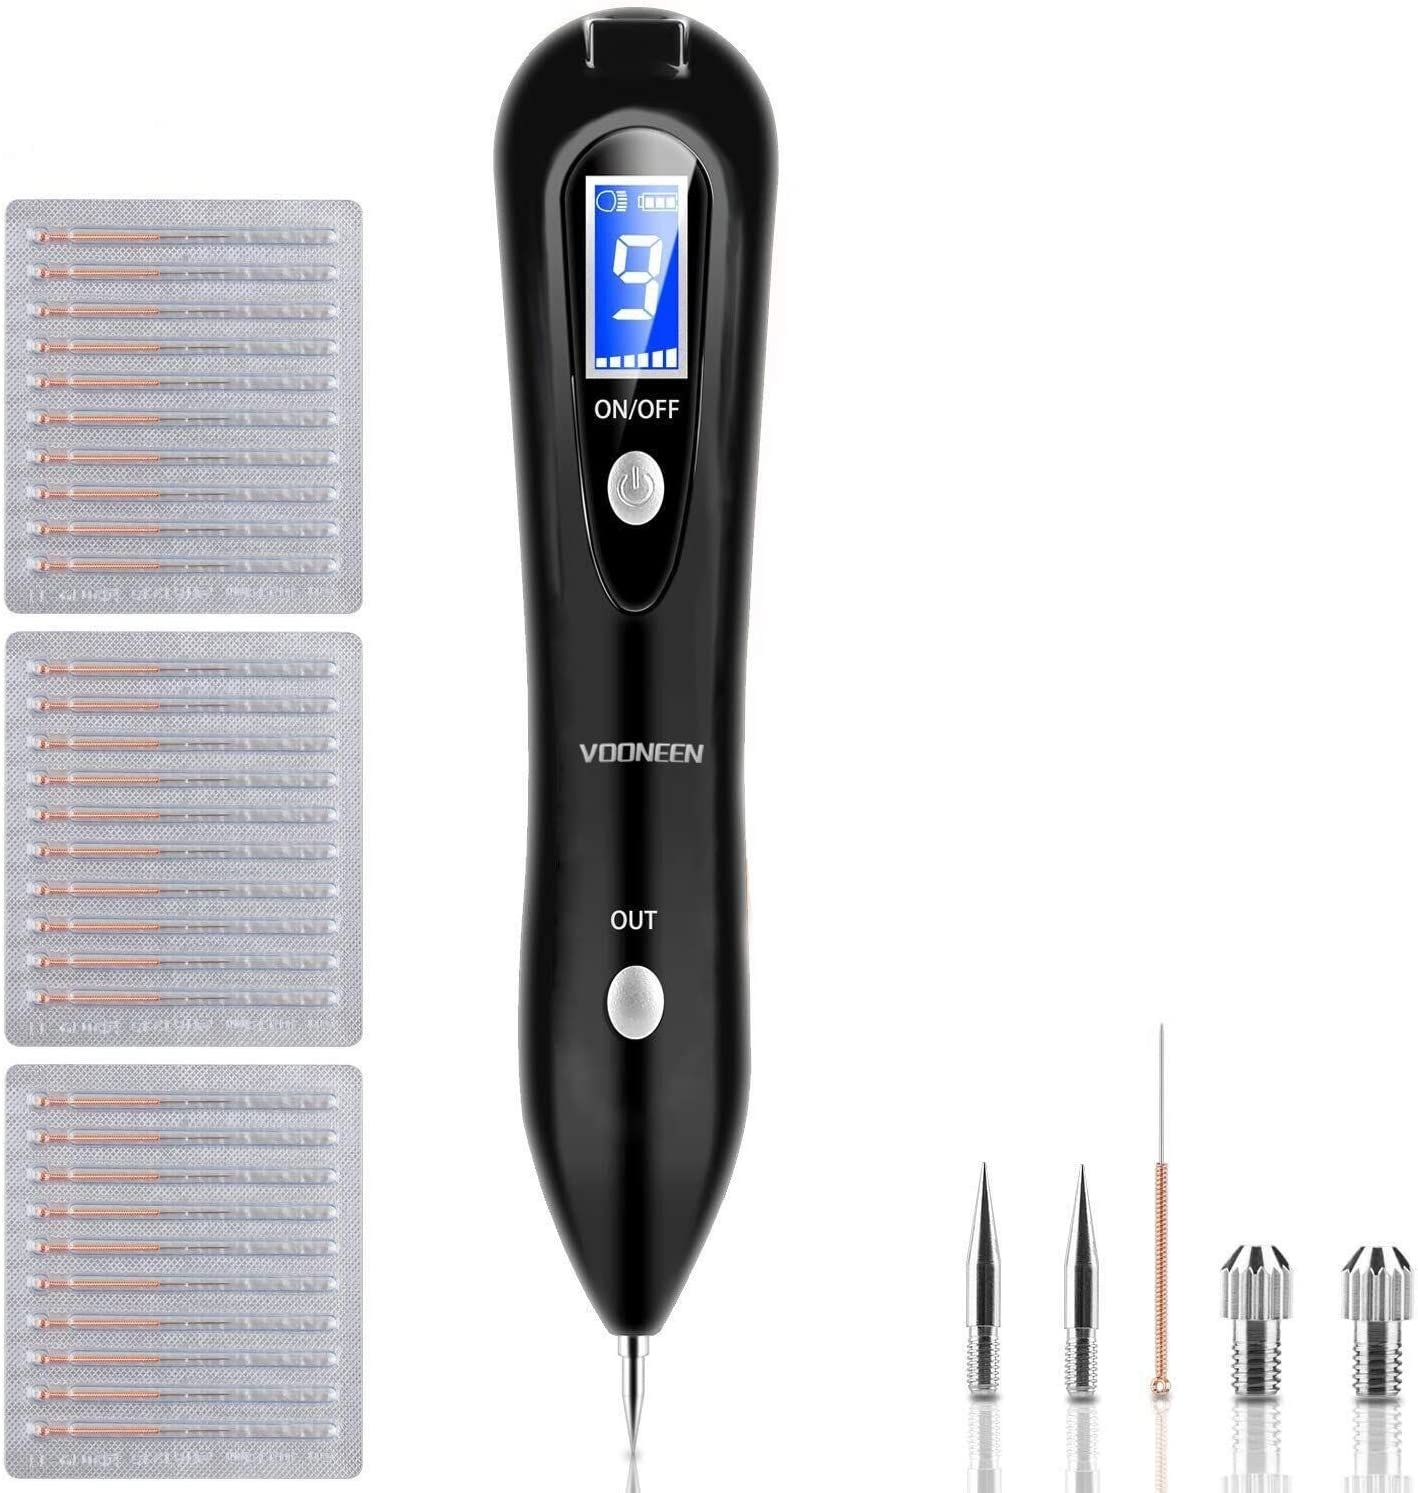 Skin Tags Remover Pen Vooneen Mole Remover With 9 Strength Levels Led Spotlight Portable Rechargeable Skin Tag Removal Pen For Wart Freckle Nevus Dark Spot And Small Tattoo Black Amazon Co Uk Beauty